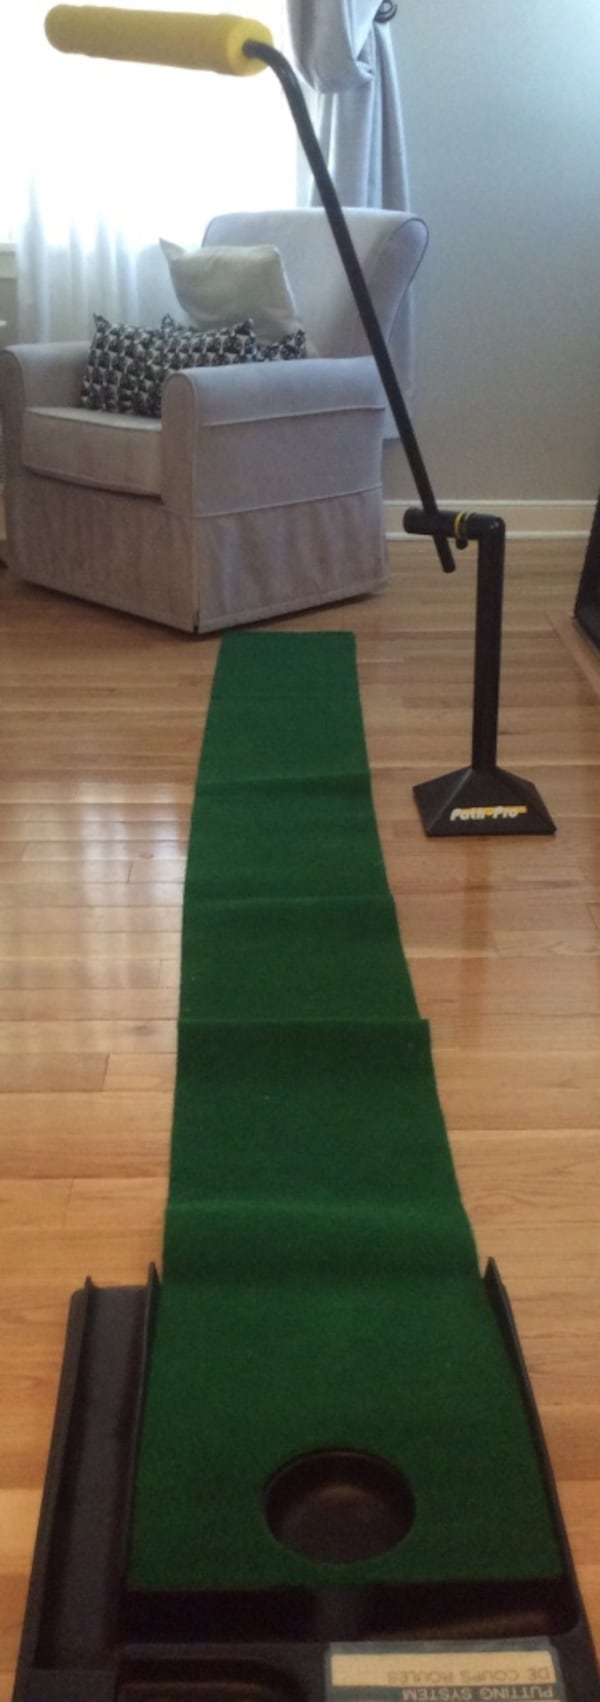 Golf putt putt practice anywhere! Great condition, used once, works great. Pickup in Falls Church . 81442954-c3d5-4363-a43f-825981d1eee7